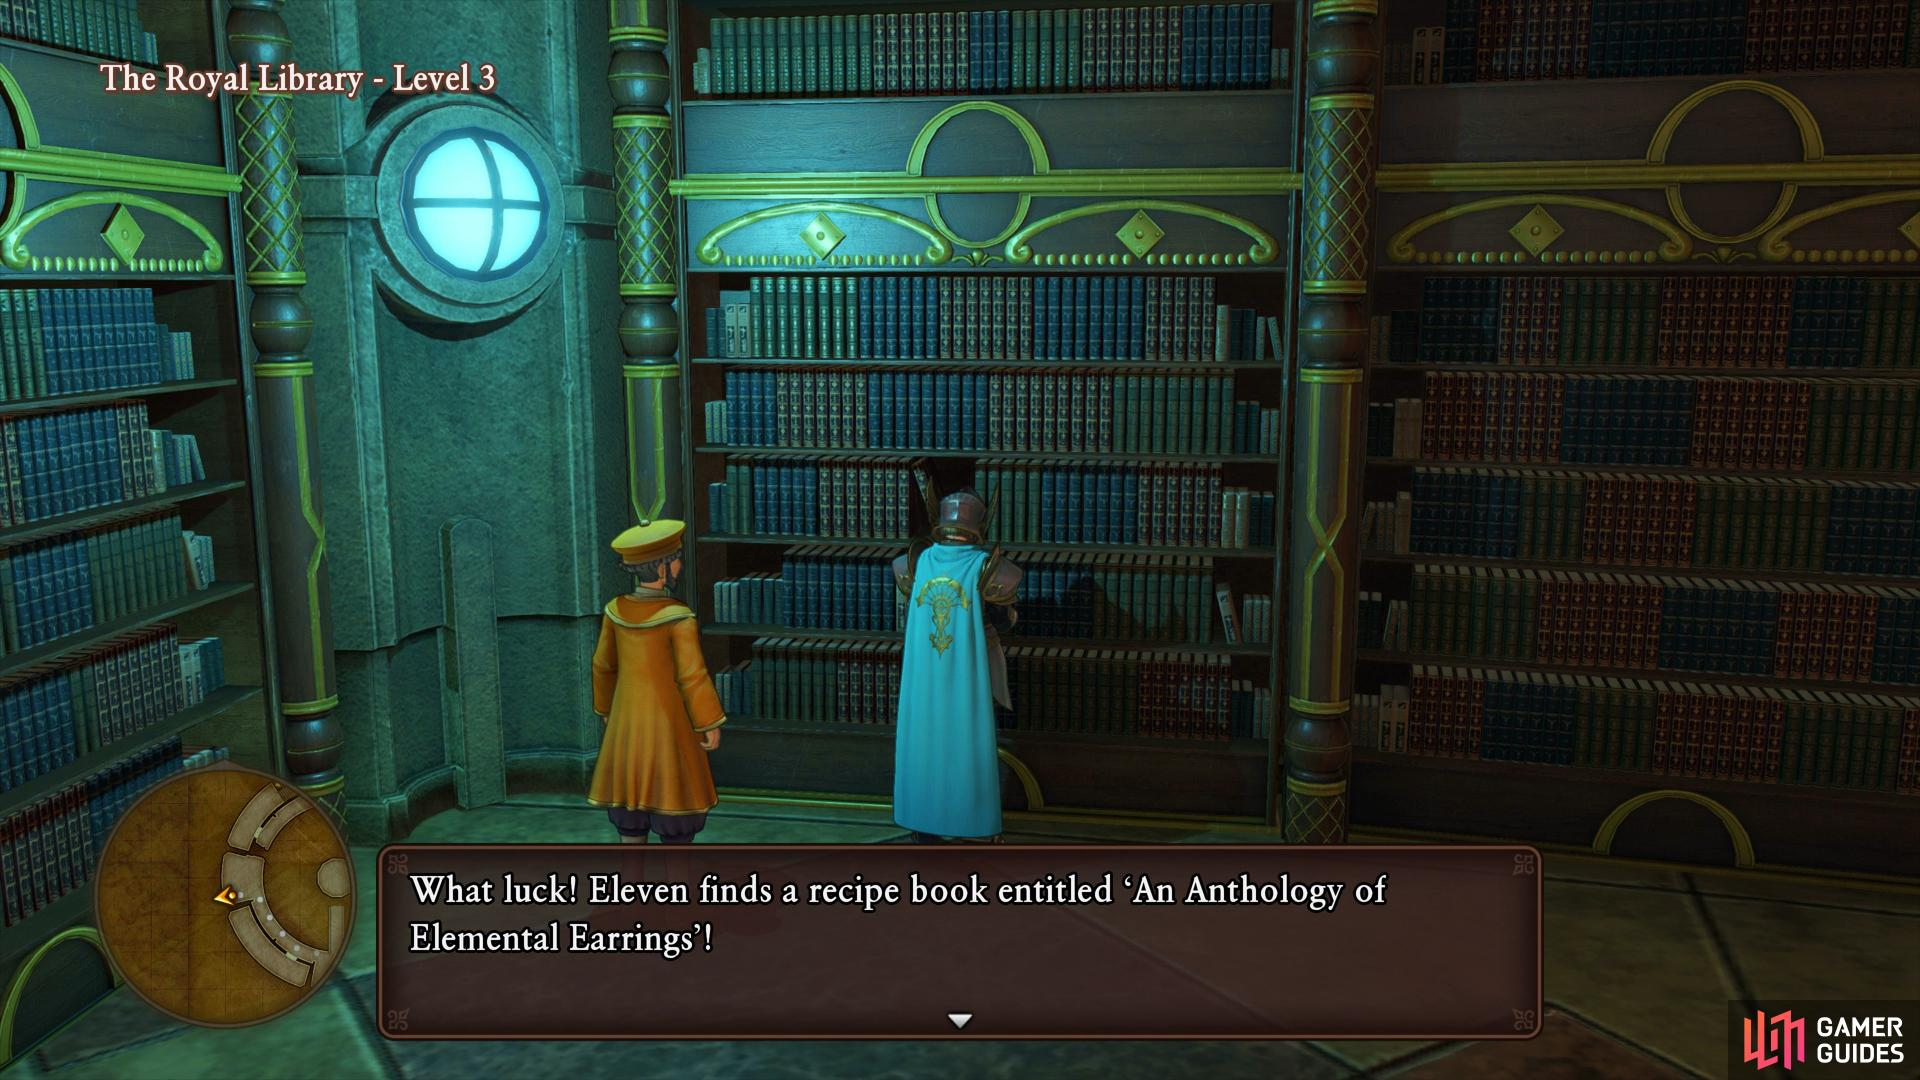 a second Recipe Book can be found on the southwest side of the Level.